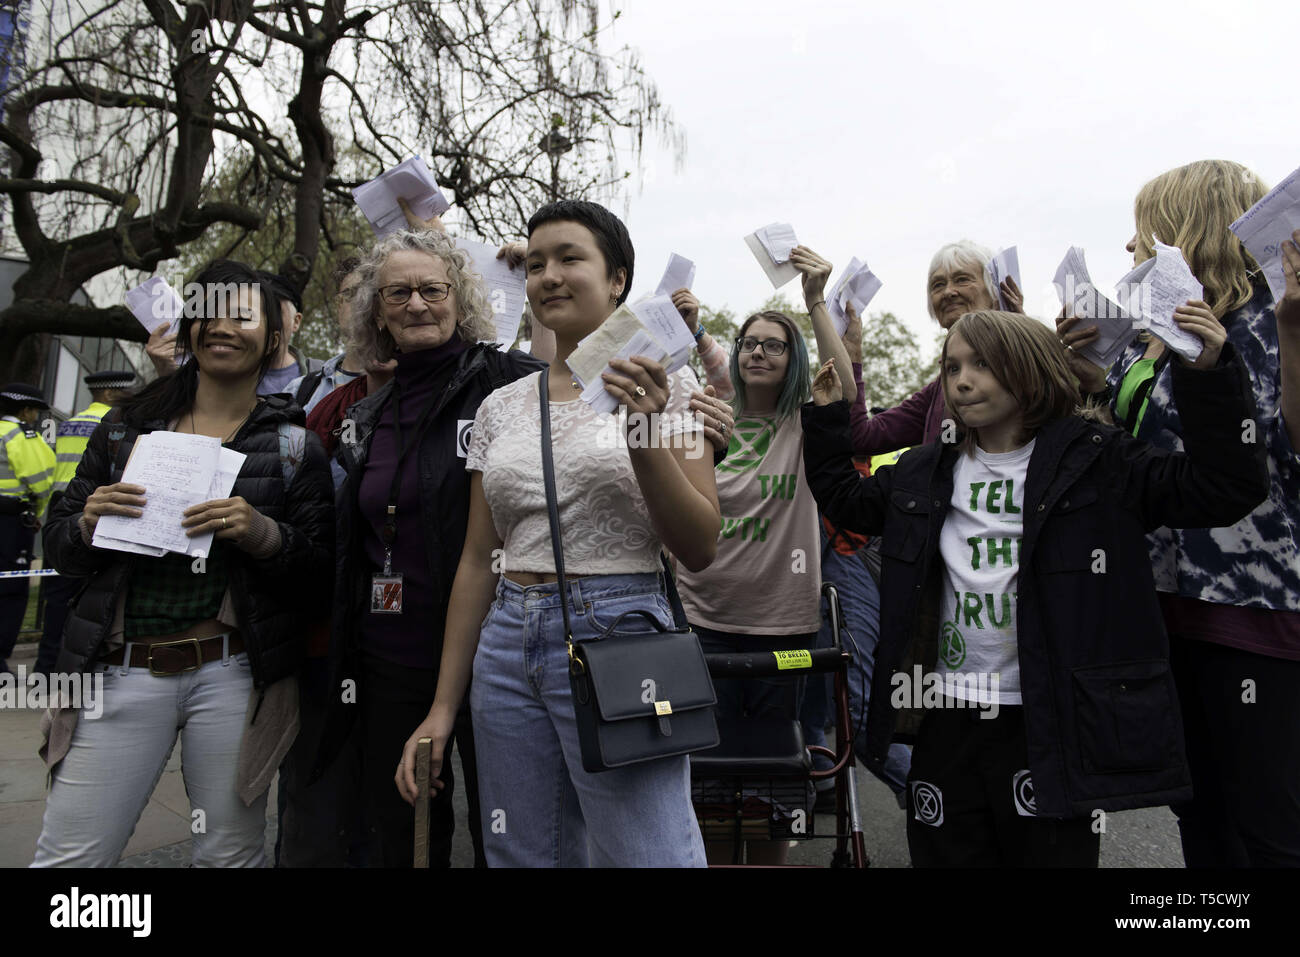 London, Greater London, UK. 23rd Apr, 2019. Baroness Jenny Jones (2nd from left) walking to Parliament with ten Extinction Rebellion protesters selected to deliver letters to the MPs .Extinction Rebellion protesters march from Marble Arch to Parliament Square, attempting to deliver letters to their MPs. Extinction Rebellion activists were permitted to be in Parliament Square but not to enter Parliament. After several attempts to deliver the letters, the activists reached an agreement with MPs through the police. Ten activists were allowed to deliver the letters in the company of - Stock Image